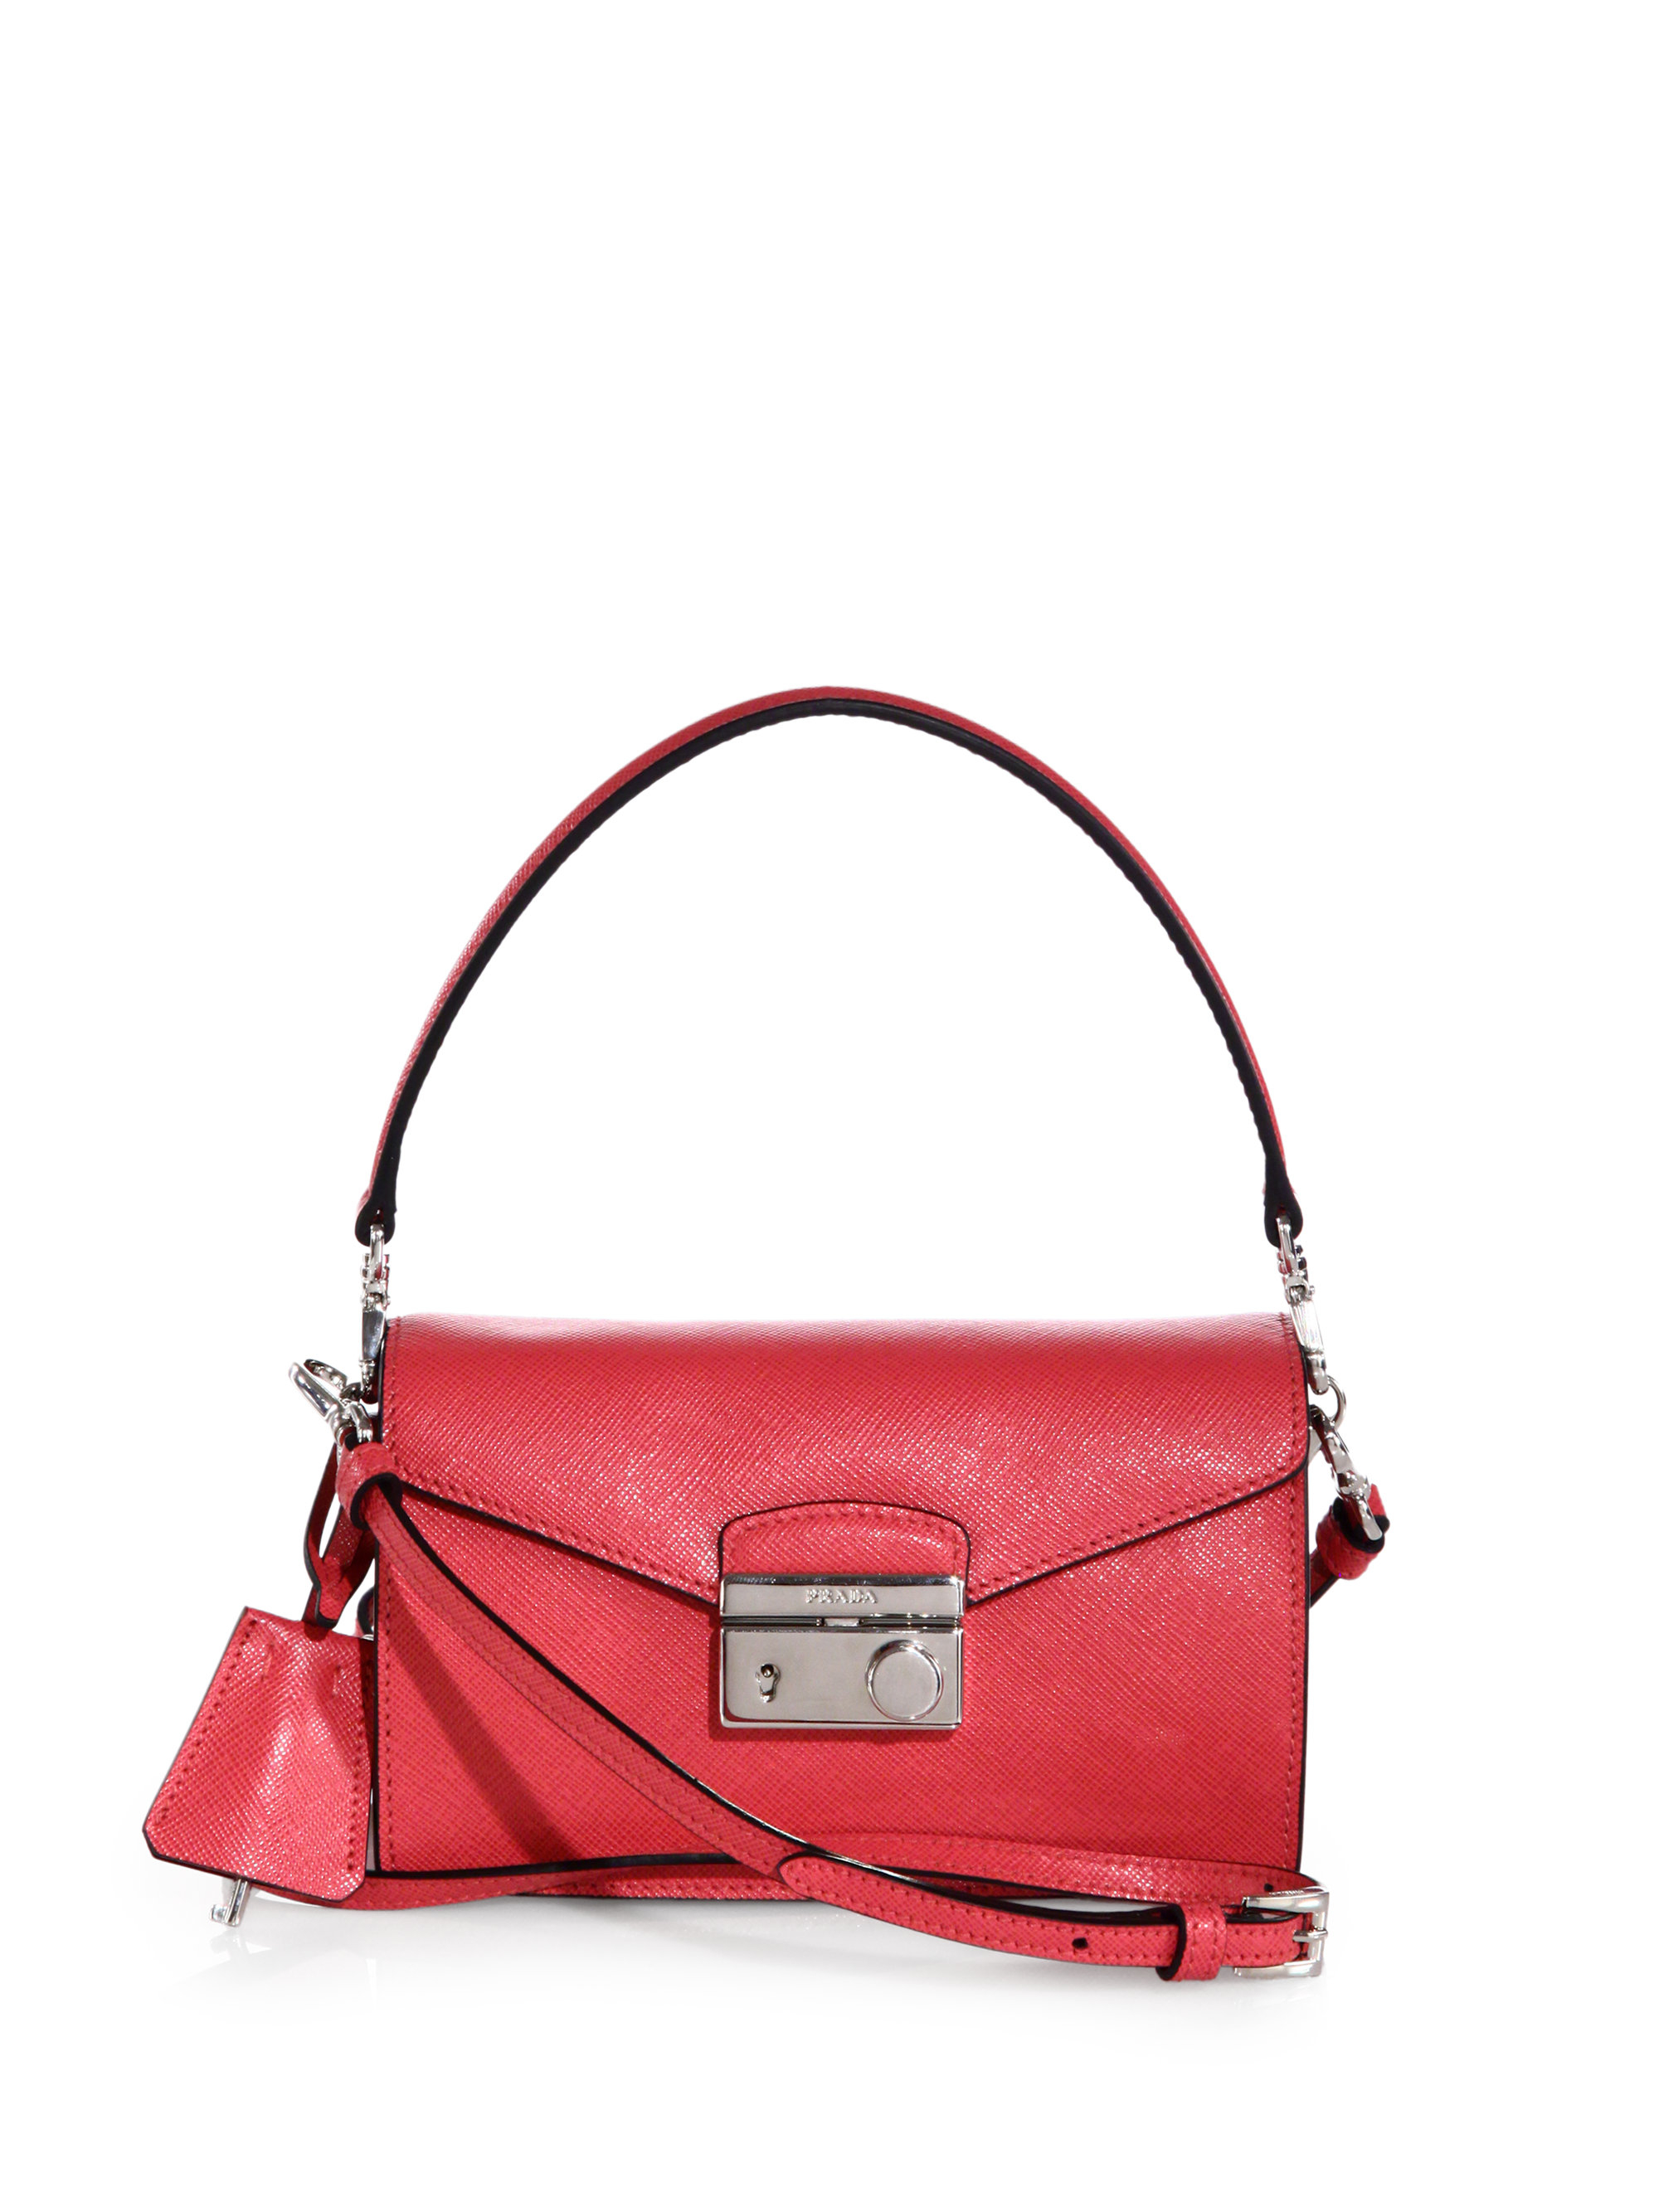 Prada Saffiano Leather Mini Sound Crossbody Bag in Pink | Lyst